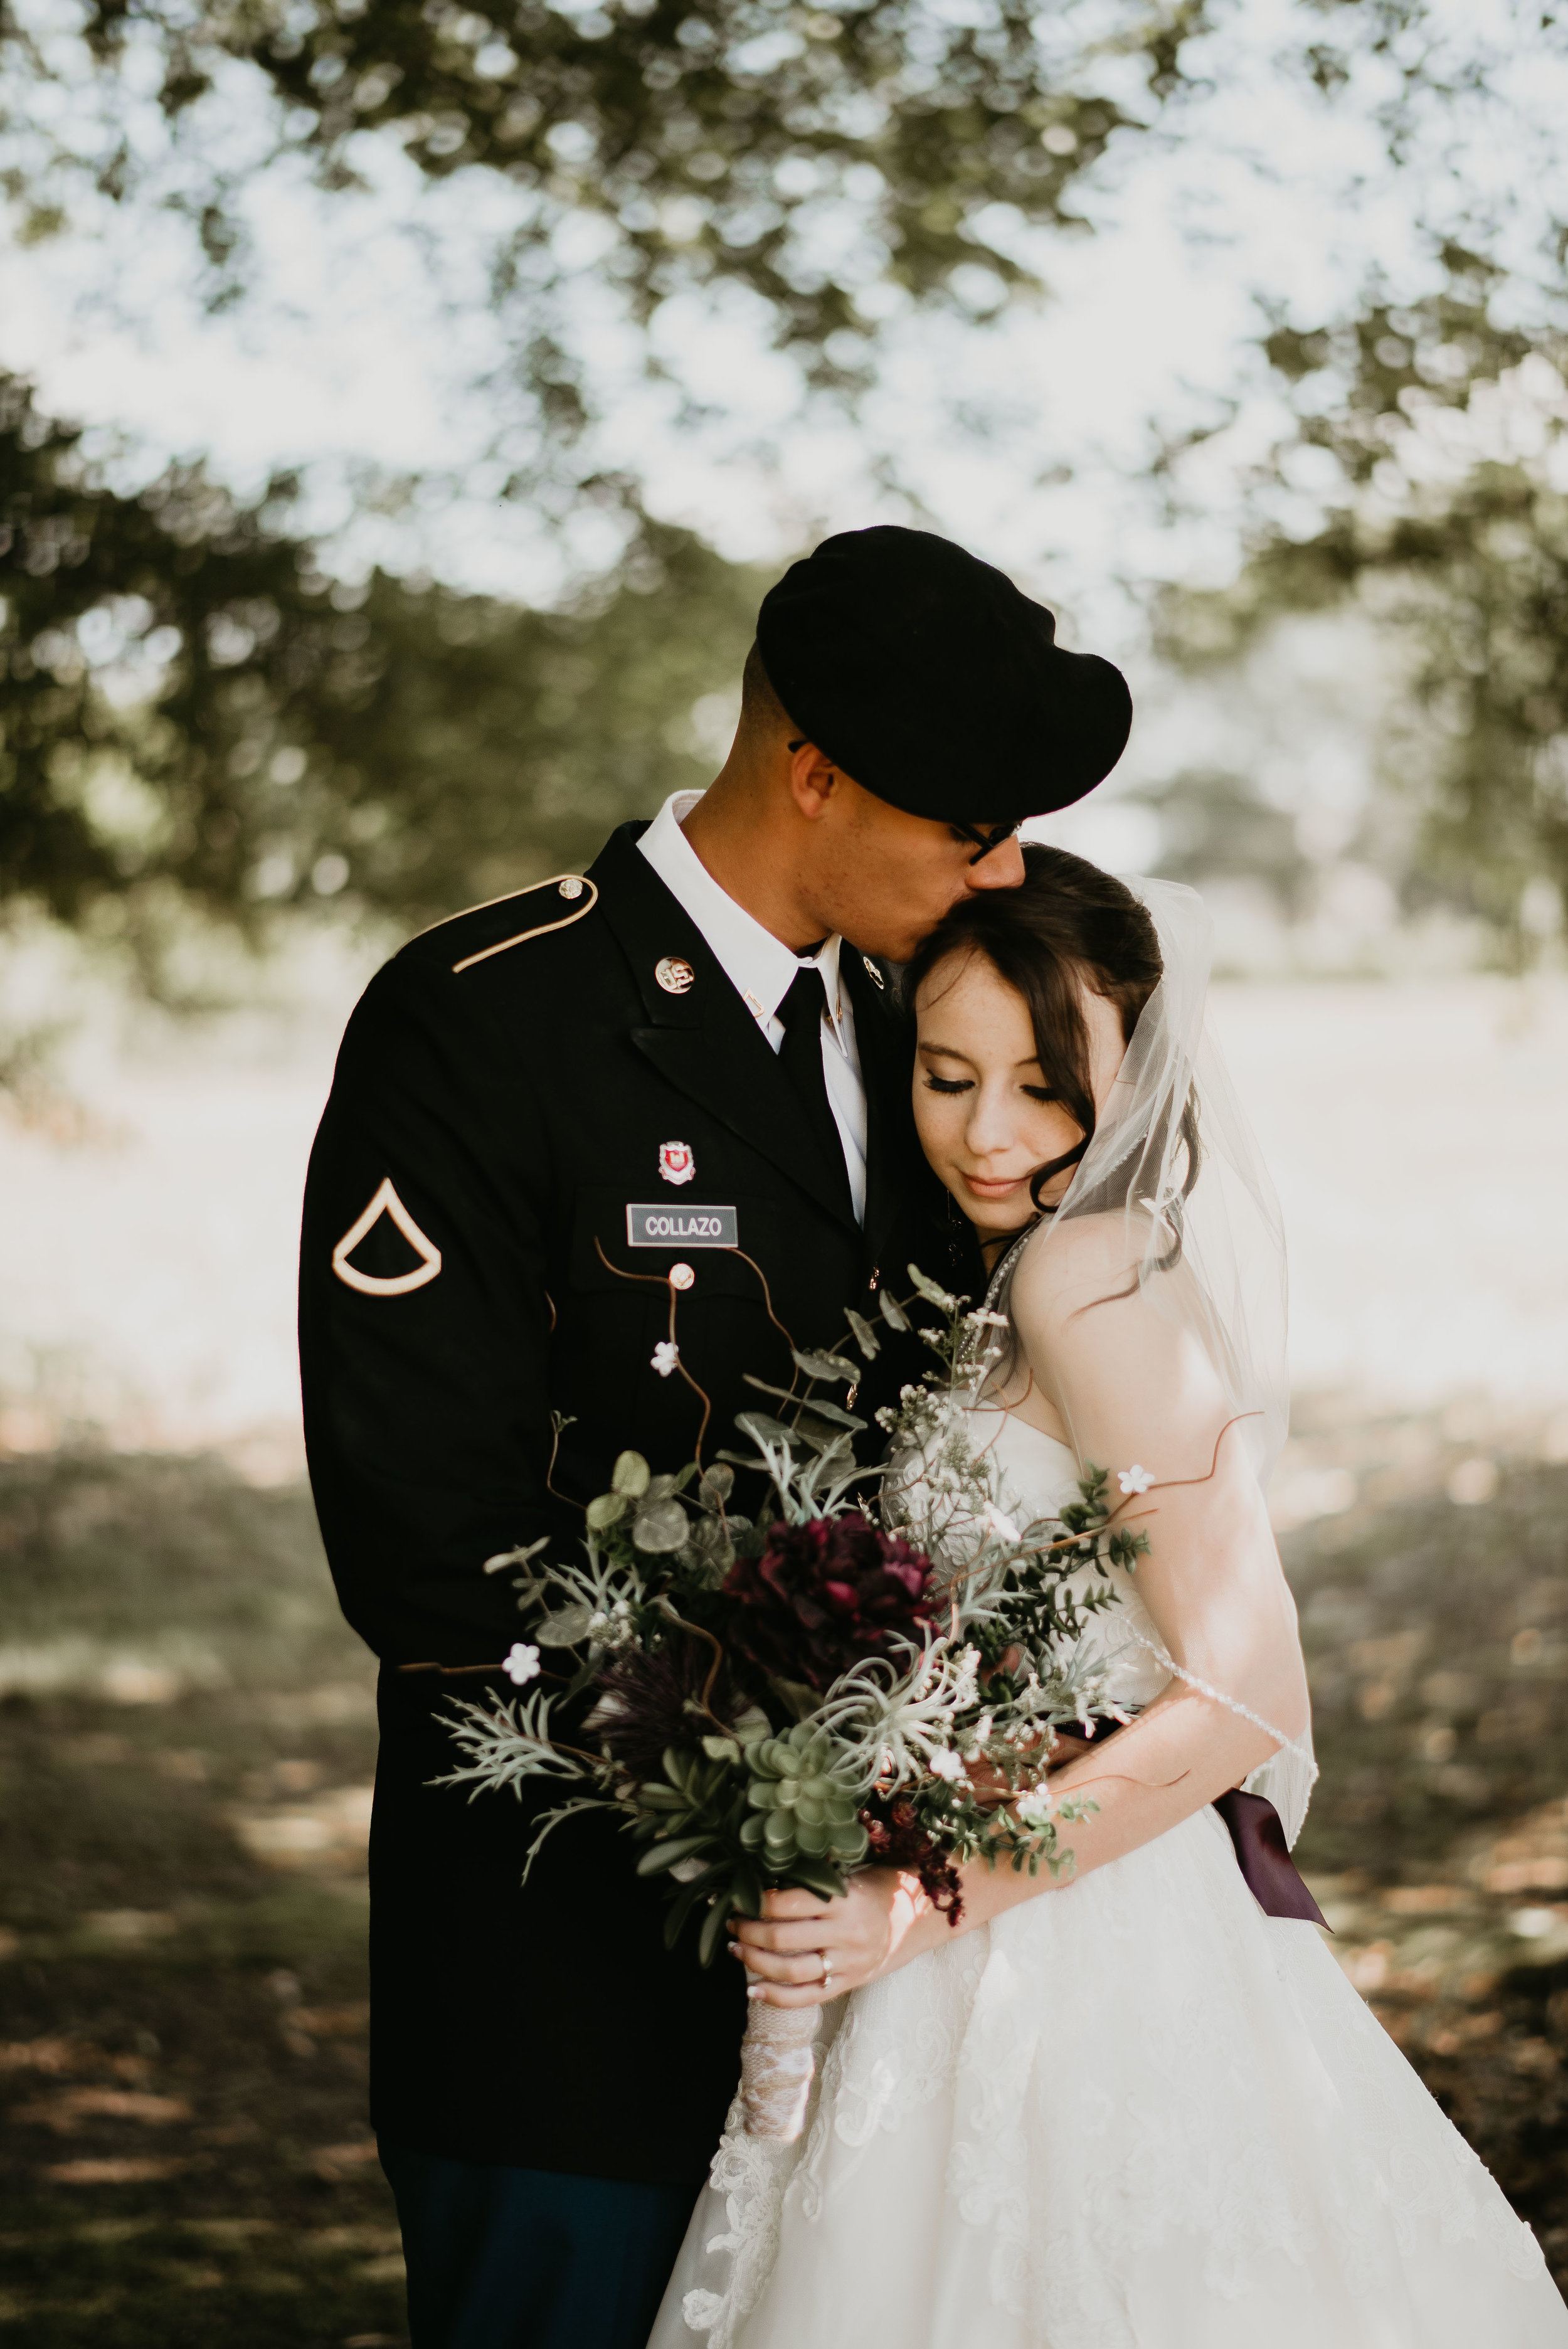 Military bride and groom kiss